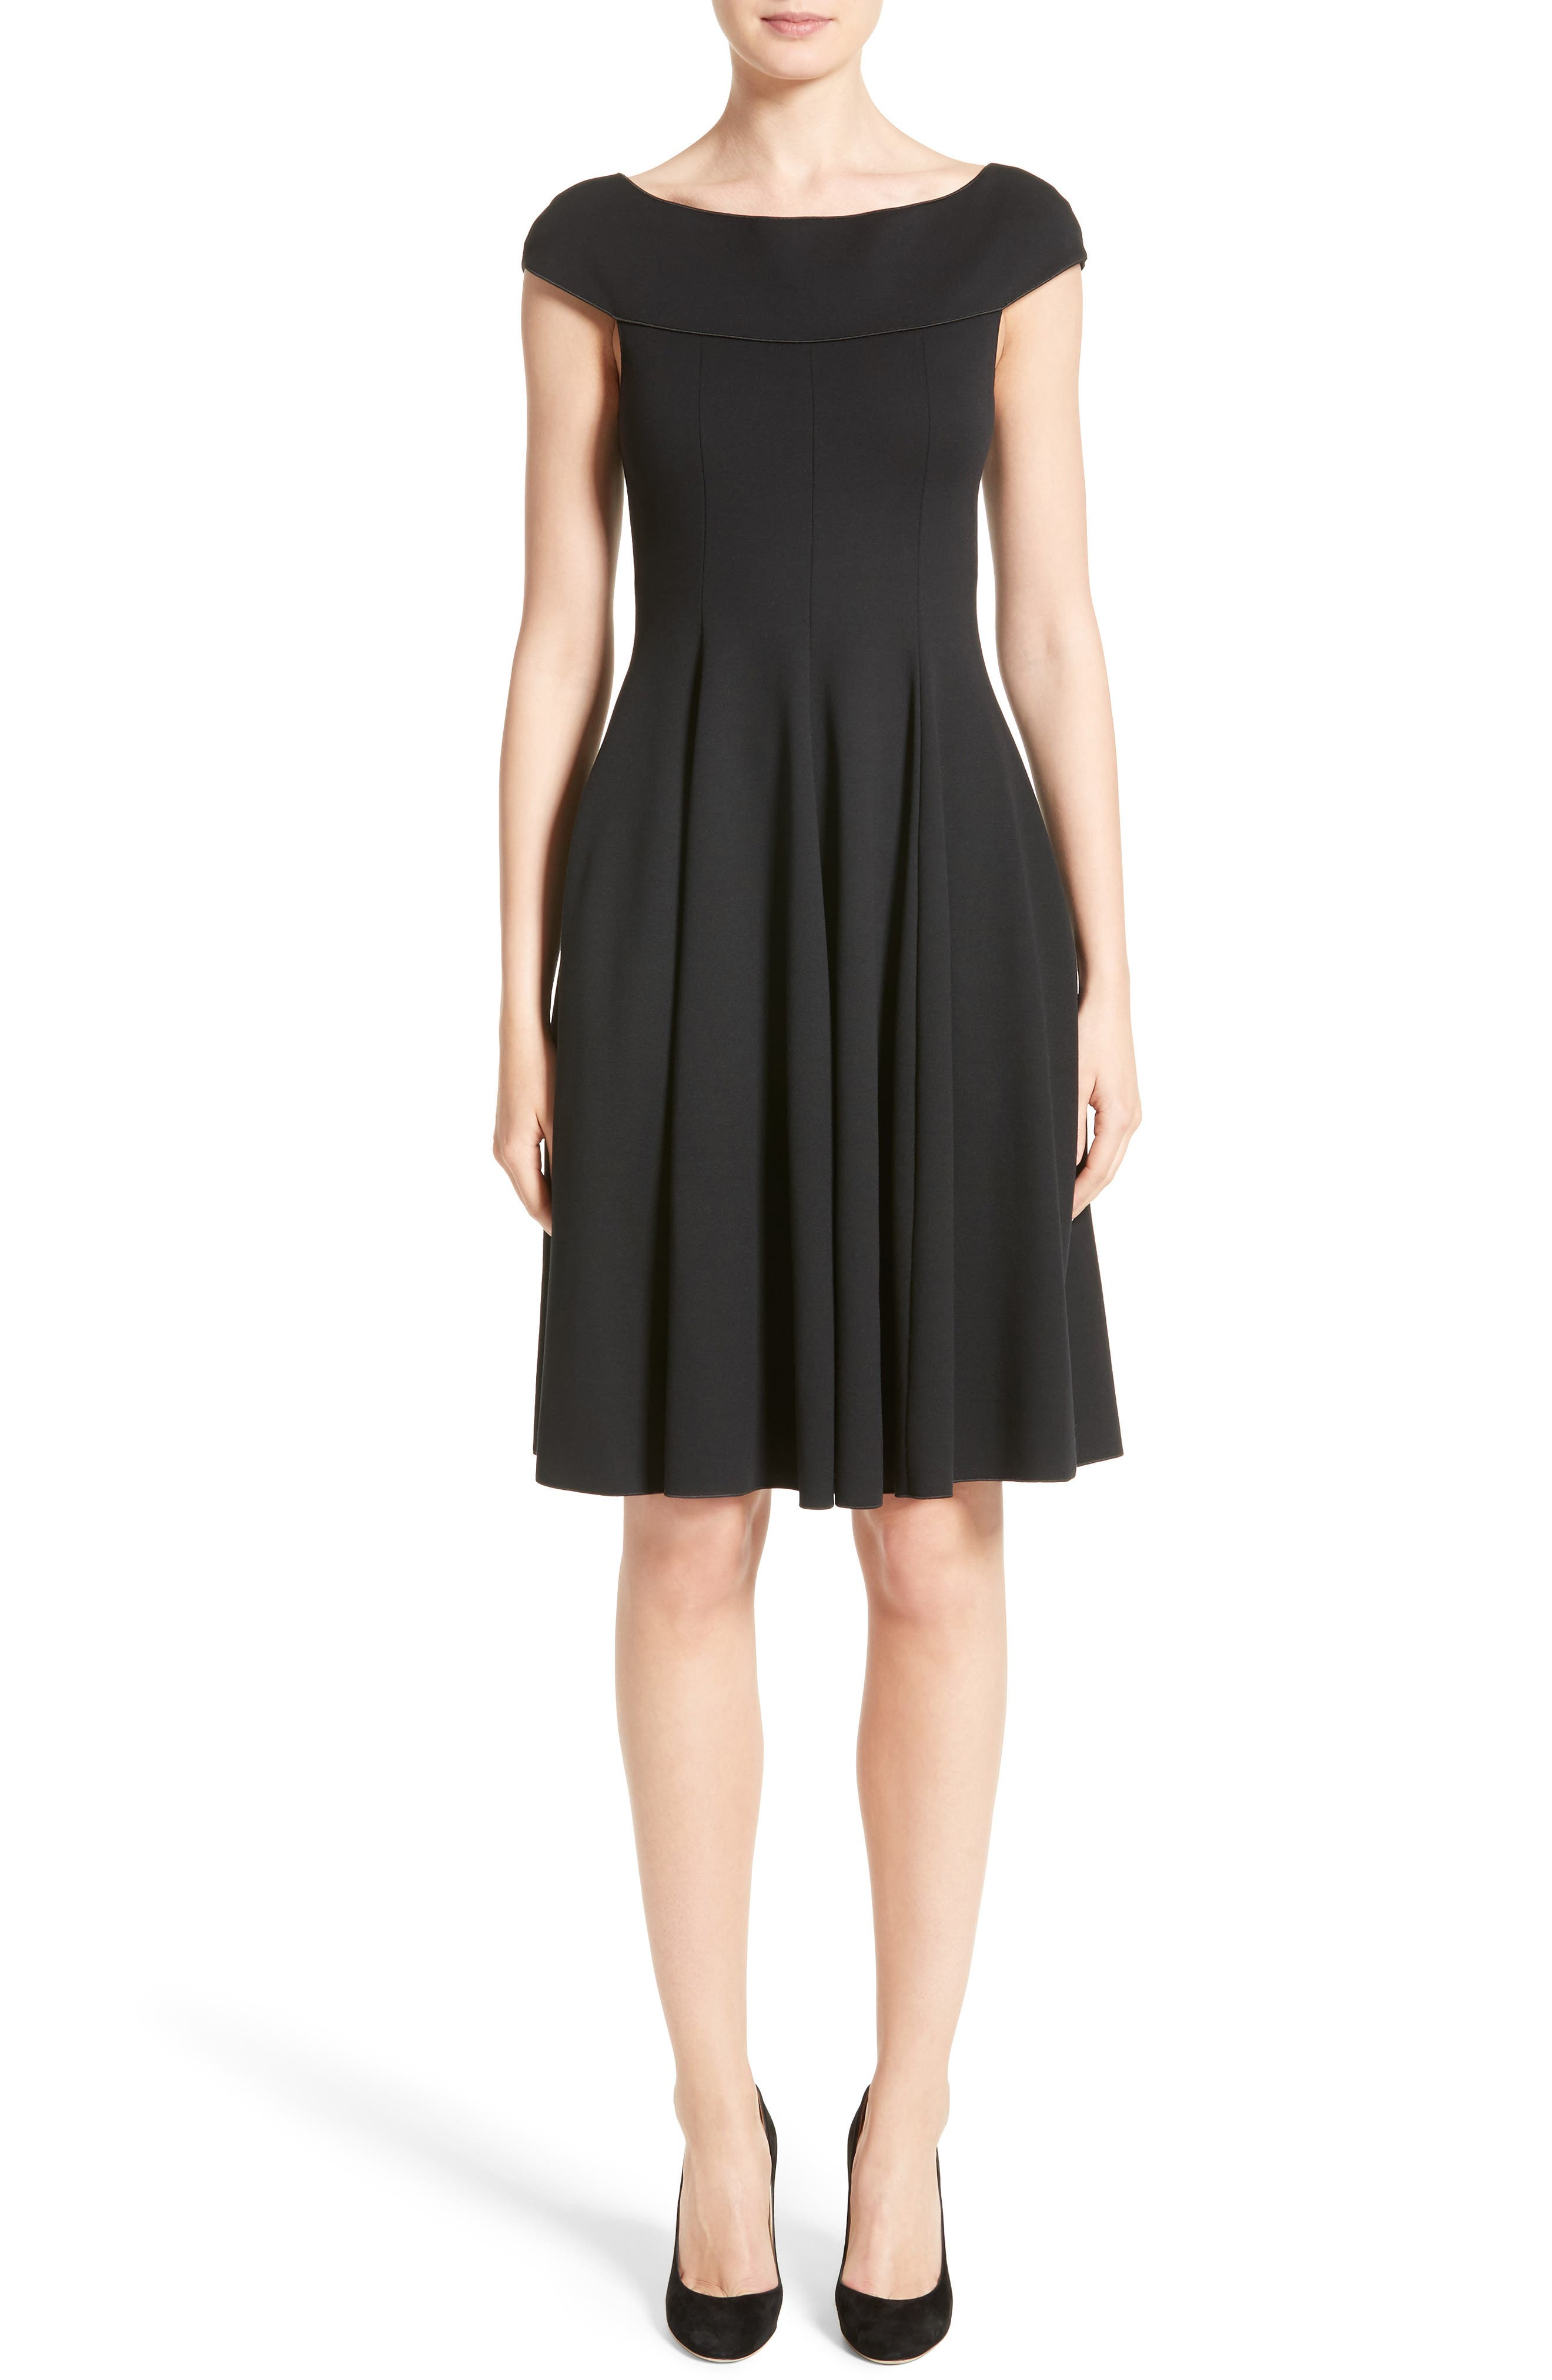 Off the Shoulder Fit & Flare Dress,                             Main thumbnail 1, color,                             Black